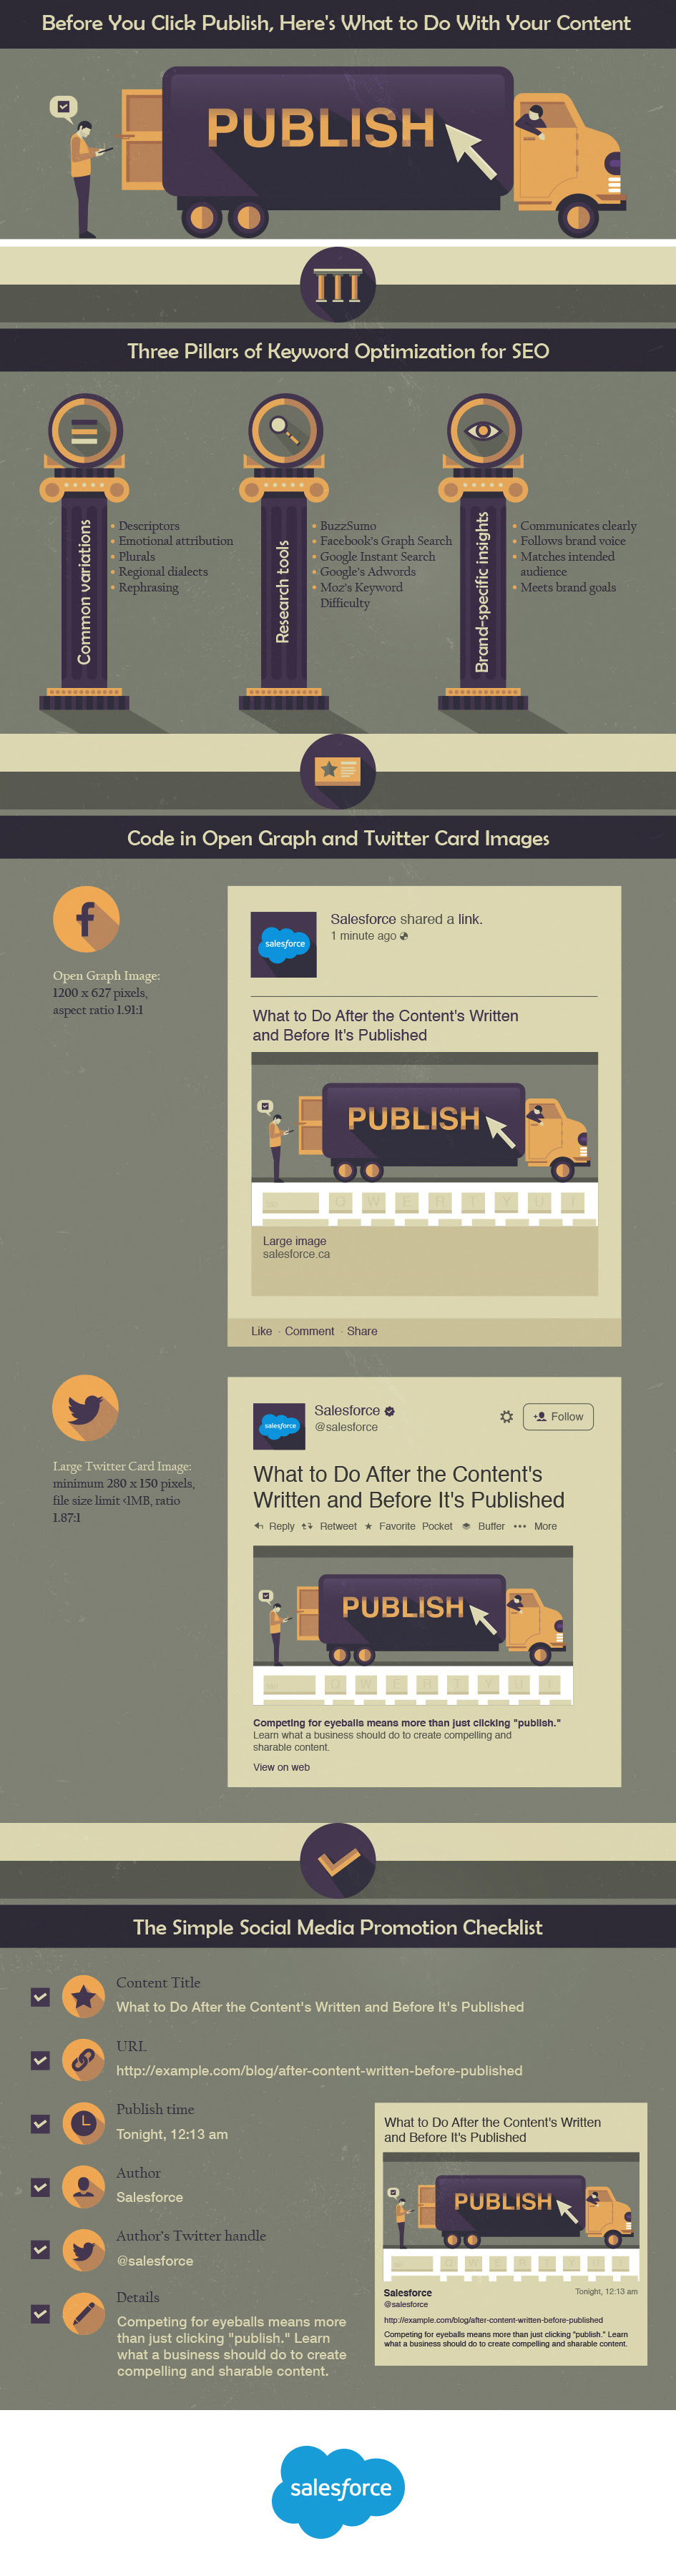 Before You Hit Publish, Here Are 10 Things To Do With Your Blog Content - #infographic